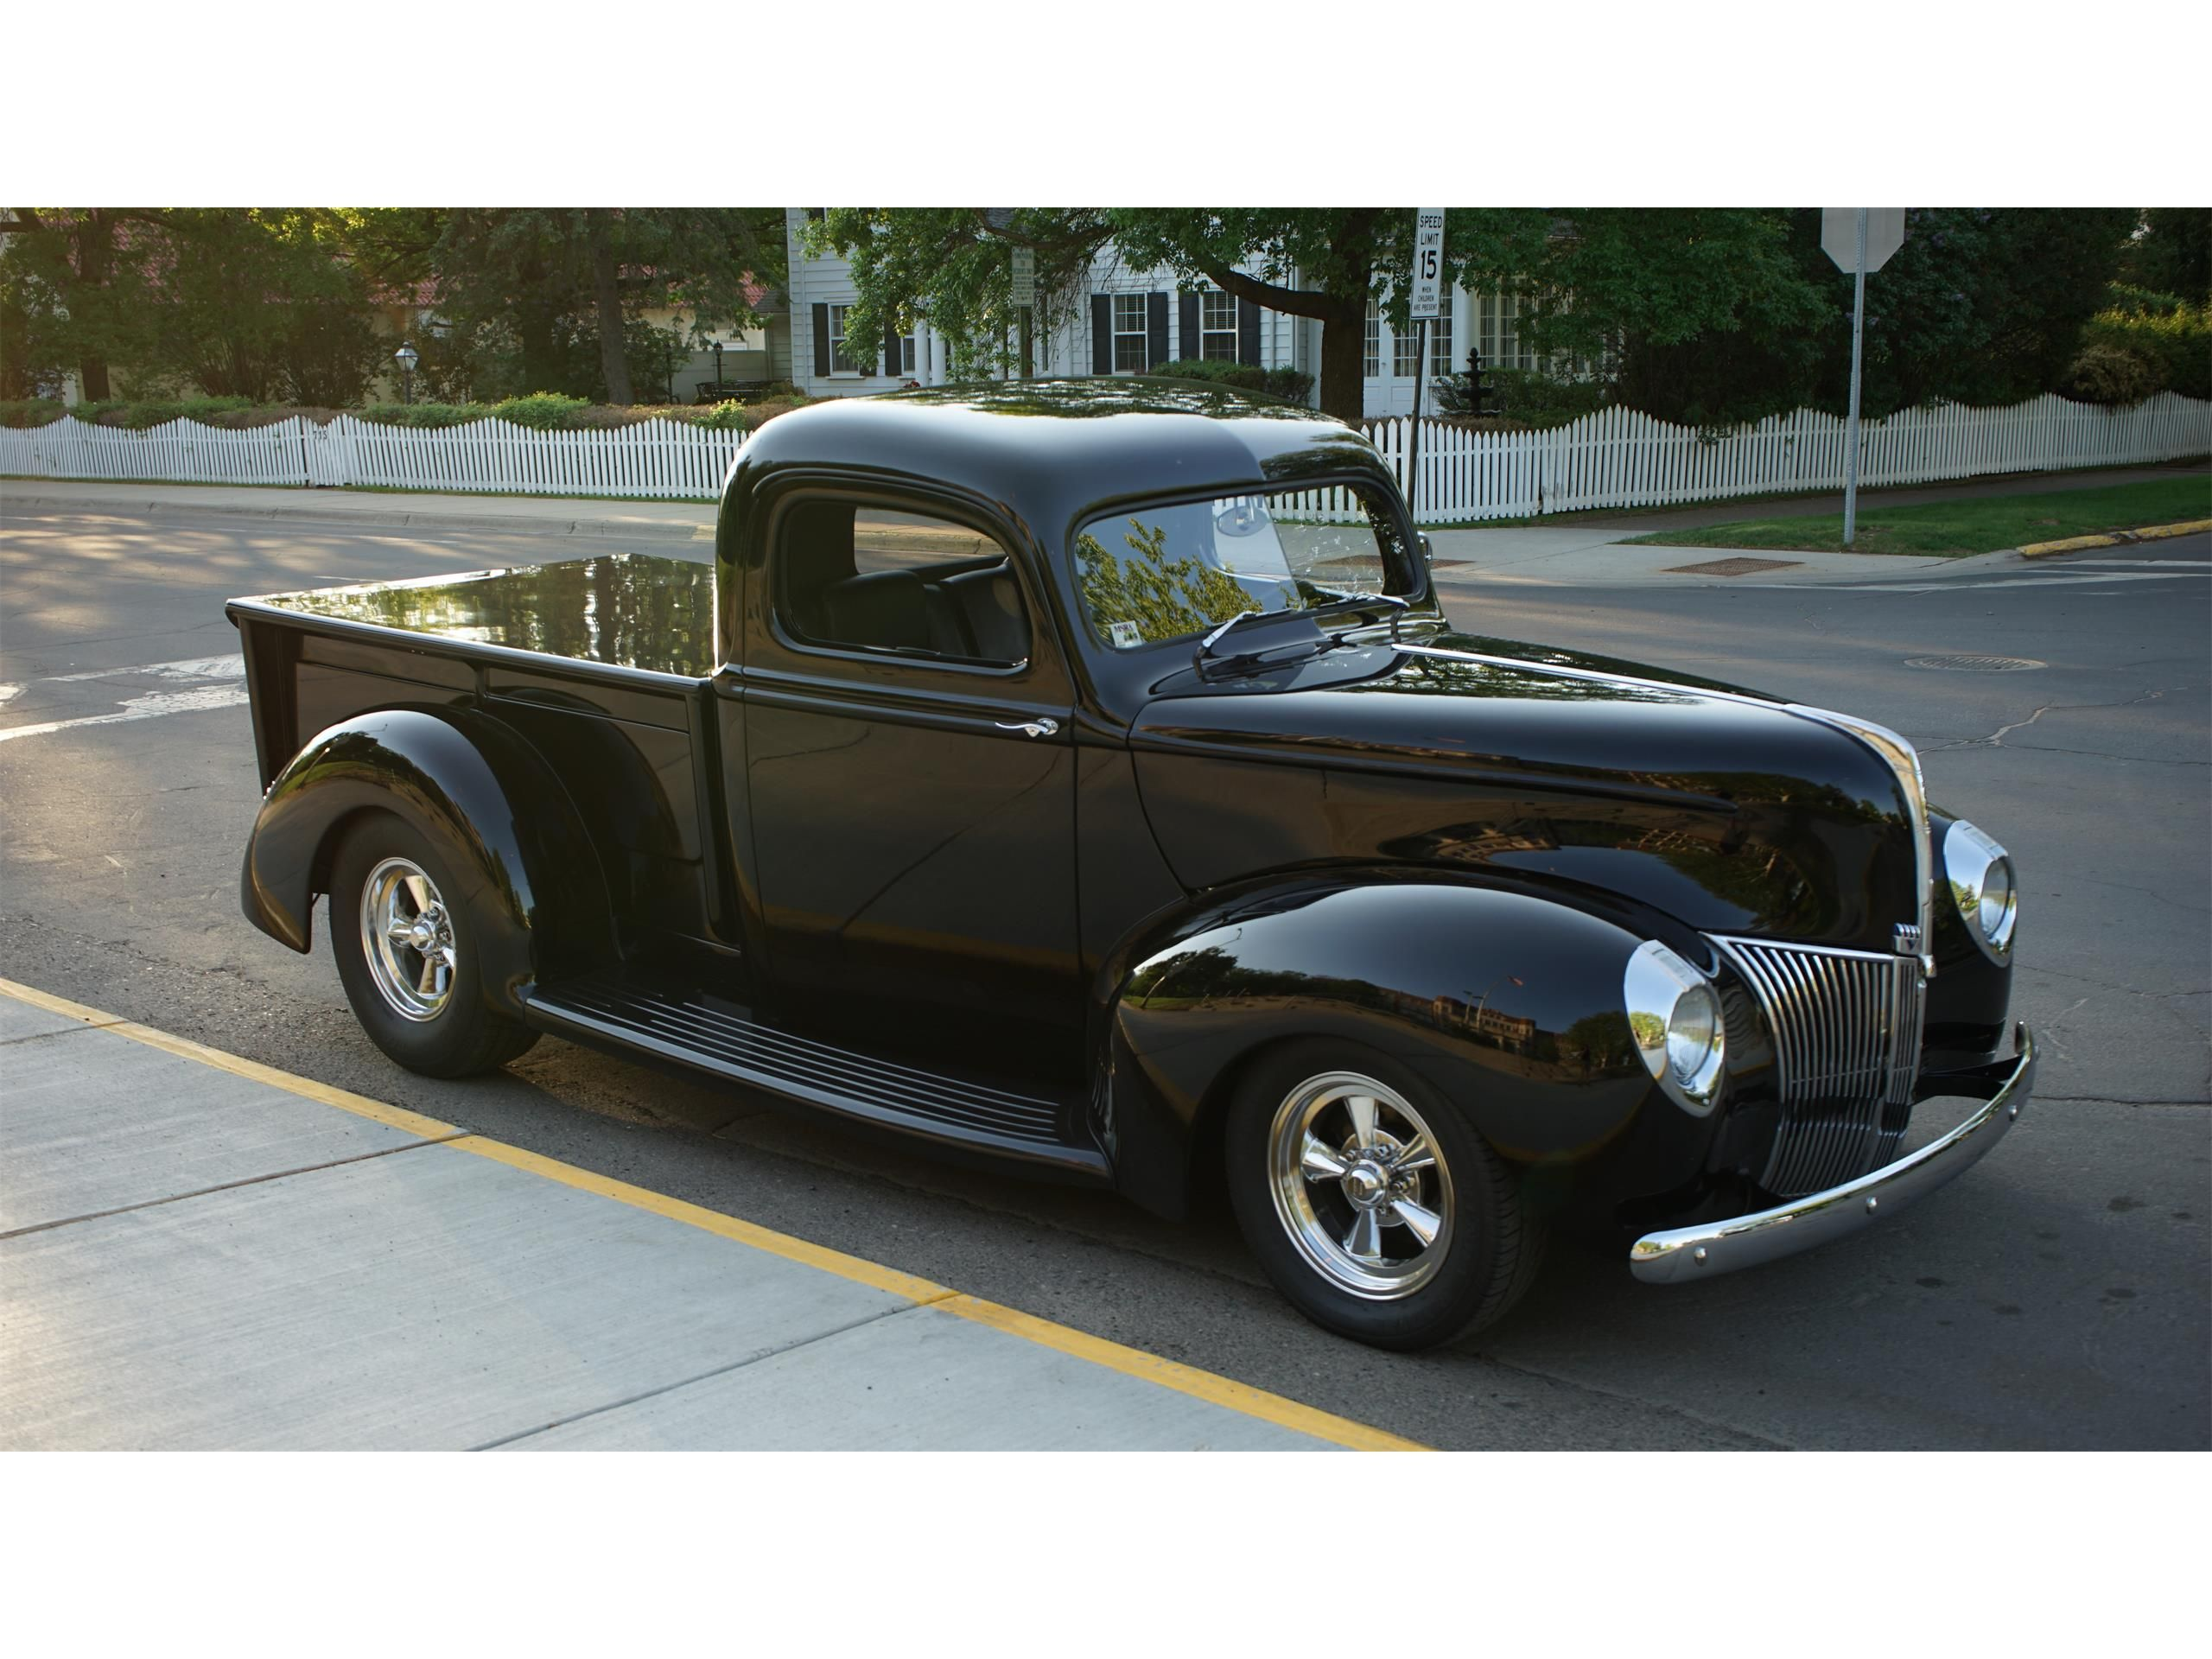 Large Photo Of 40 Pickup Nt73 Ford Pickup For Sale Ford Pickup Pickups For Sale